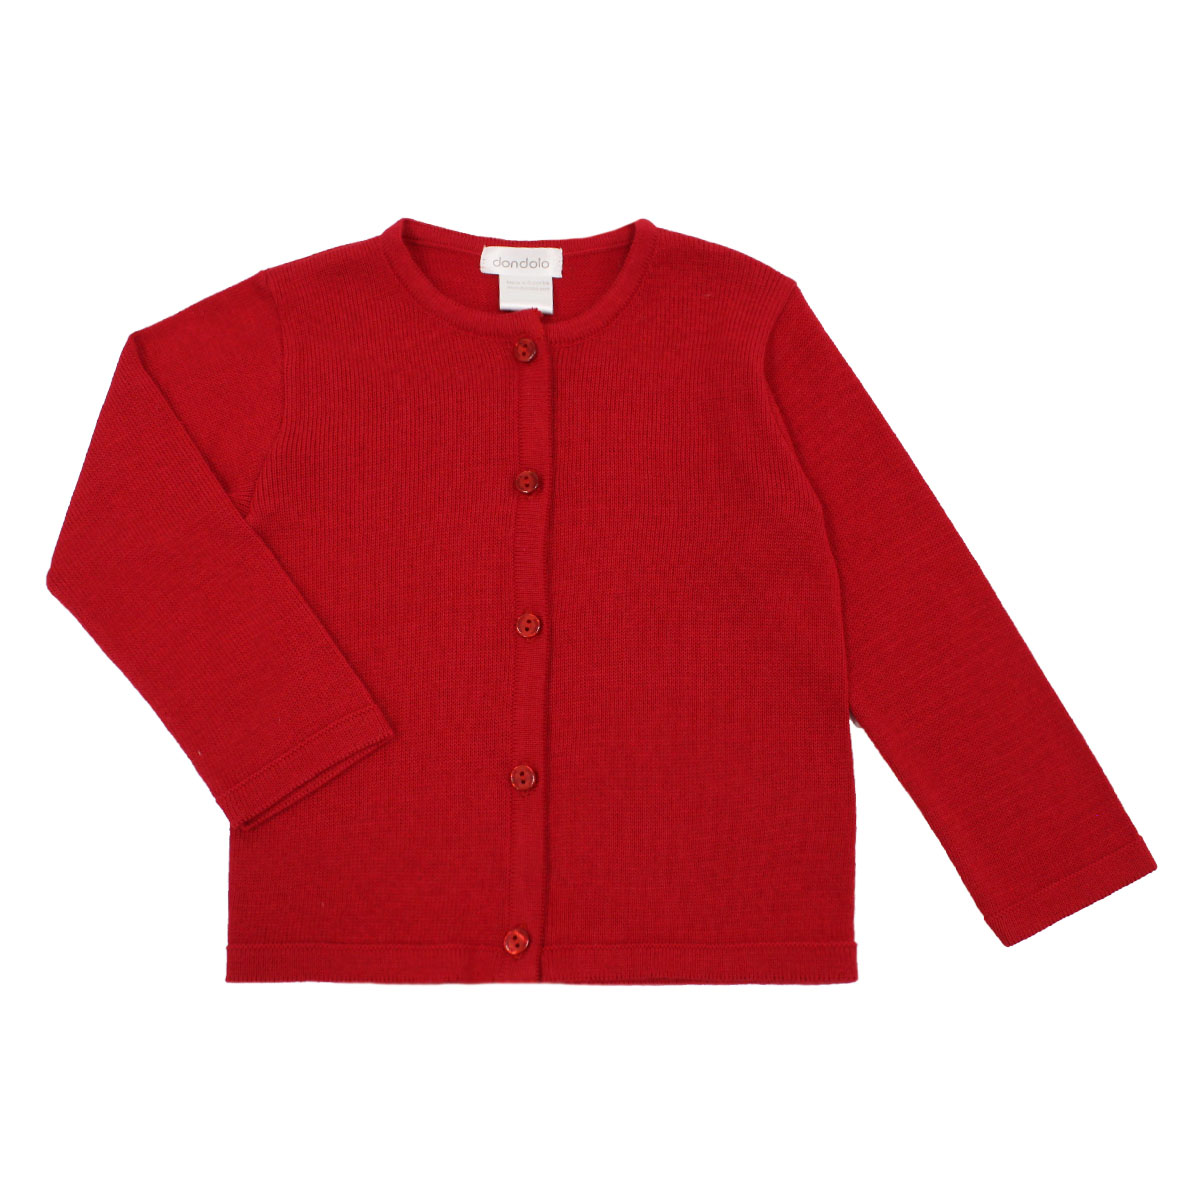 Dondolo Classic Cardigan in Red